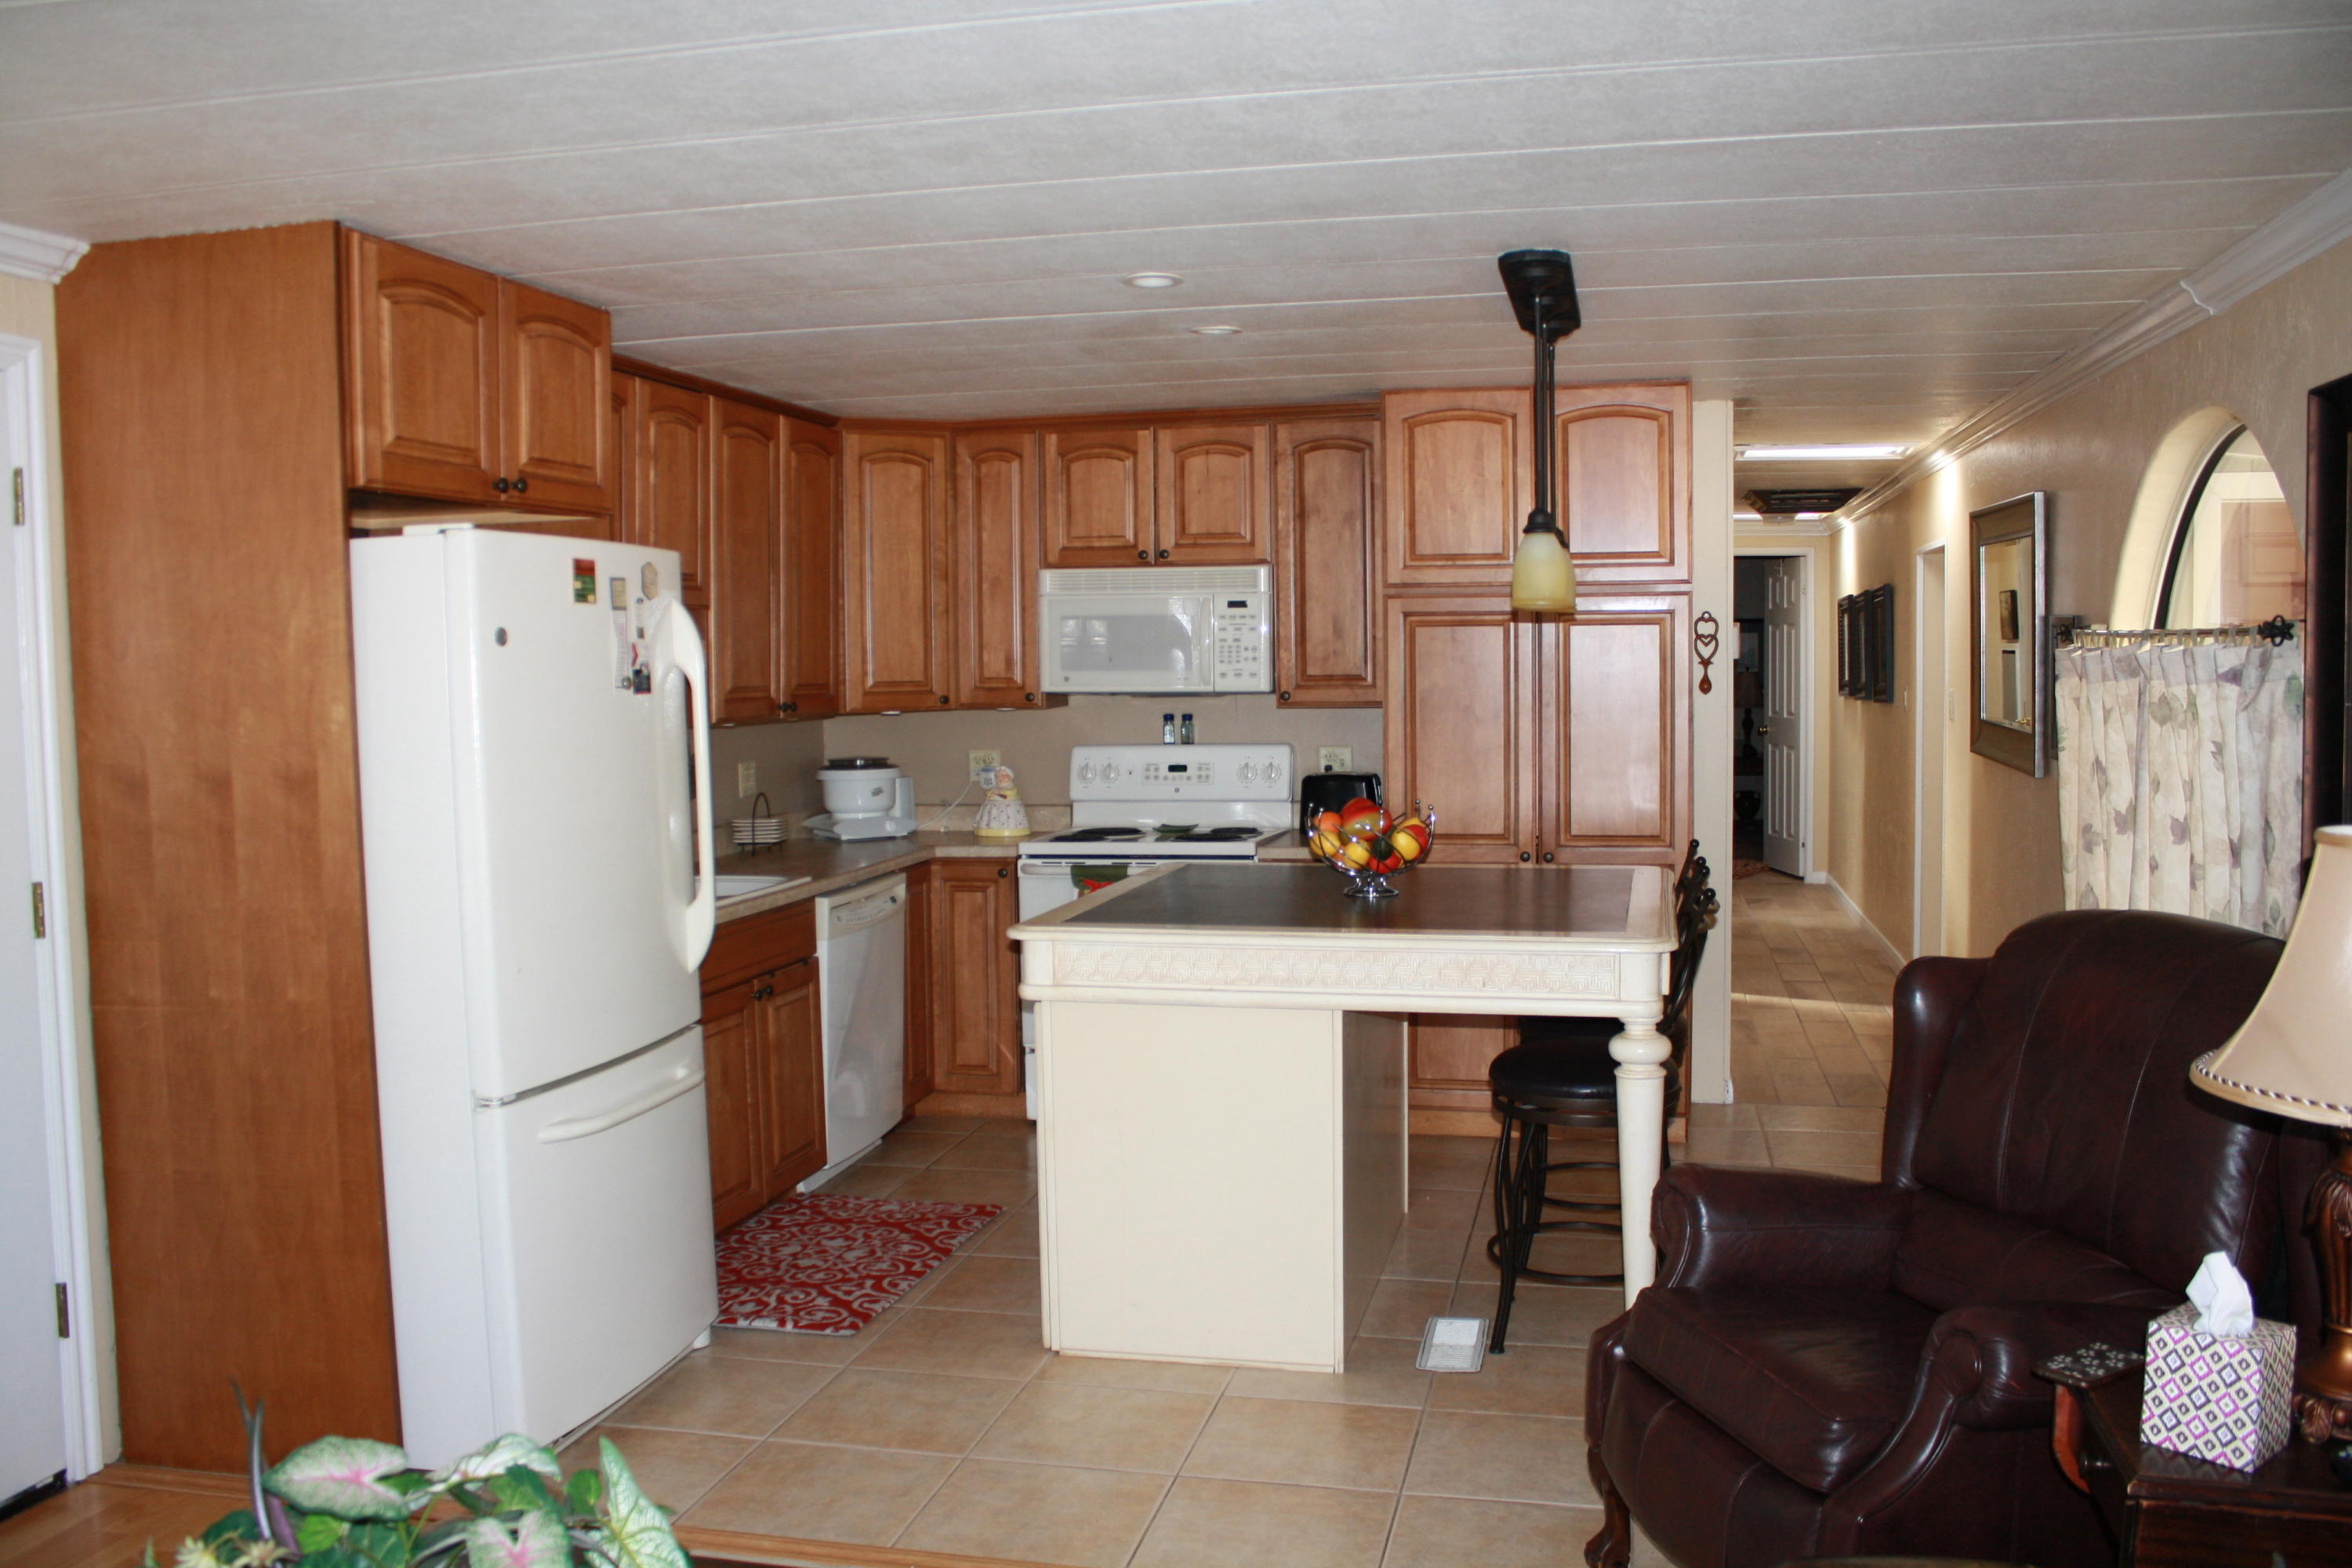 Charming manufactured home has been well taken care of. Perfect snowbird getaway or great starter home. The lot is owned with NO HOA. The yard is full of charm w/mature trees to enjoy sitting on the front deck or the backyard patio. Backyard also offers 2 large storage sheds and a workshop w/ample room for storage. Large RV Parking area.Seller is excluding washer/dryer/LG Refrigerator in shop.